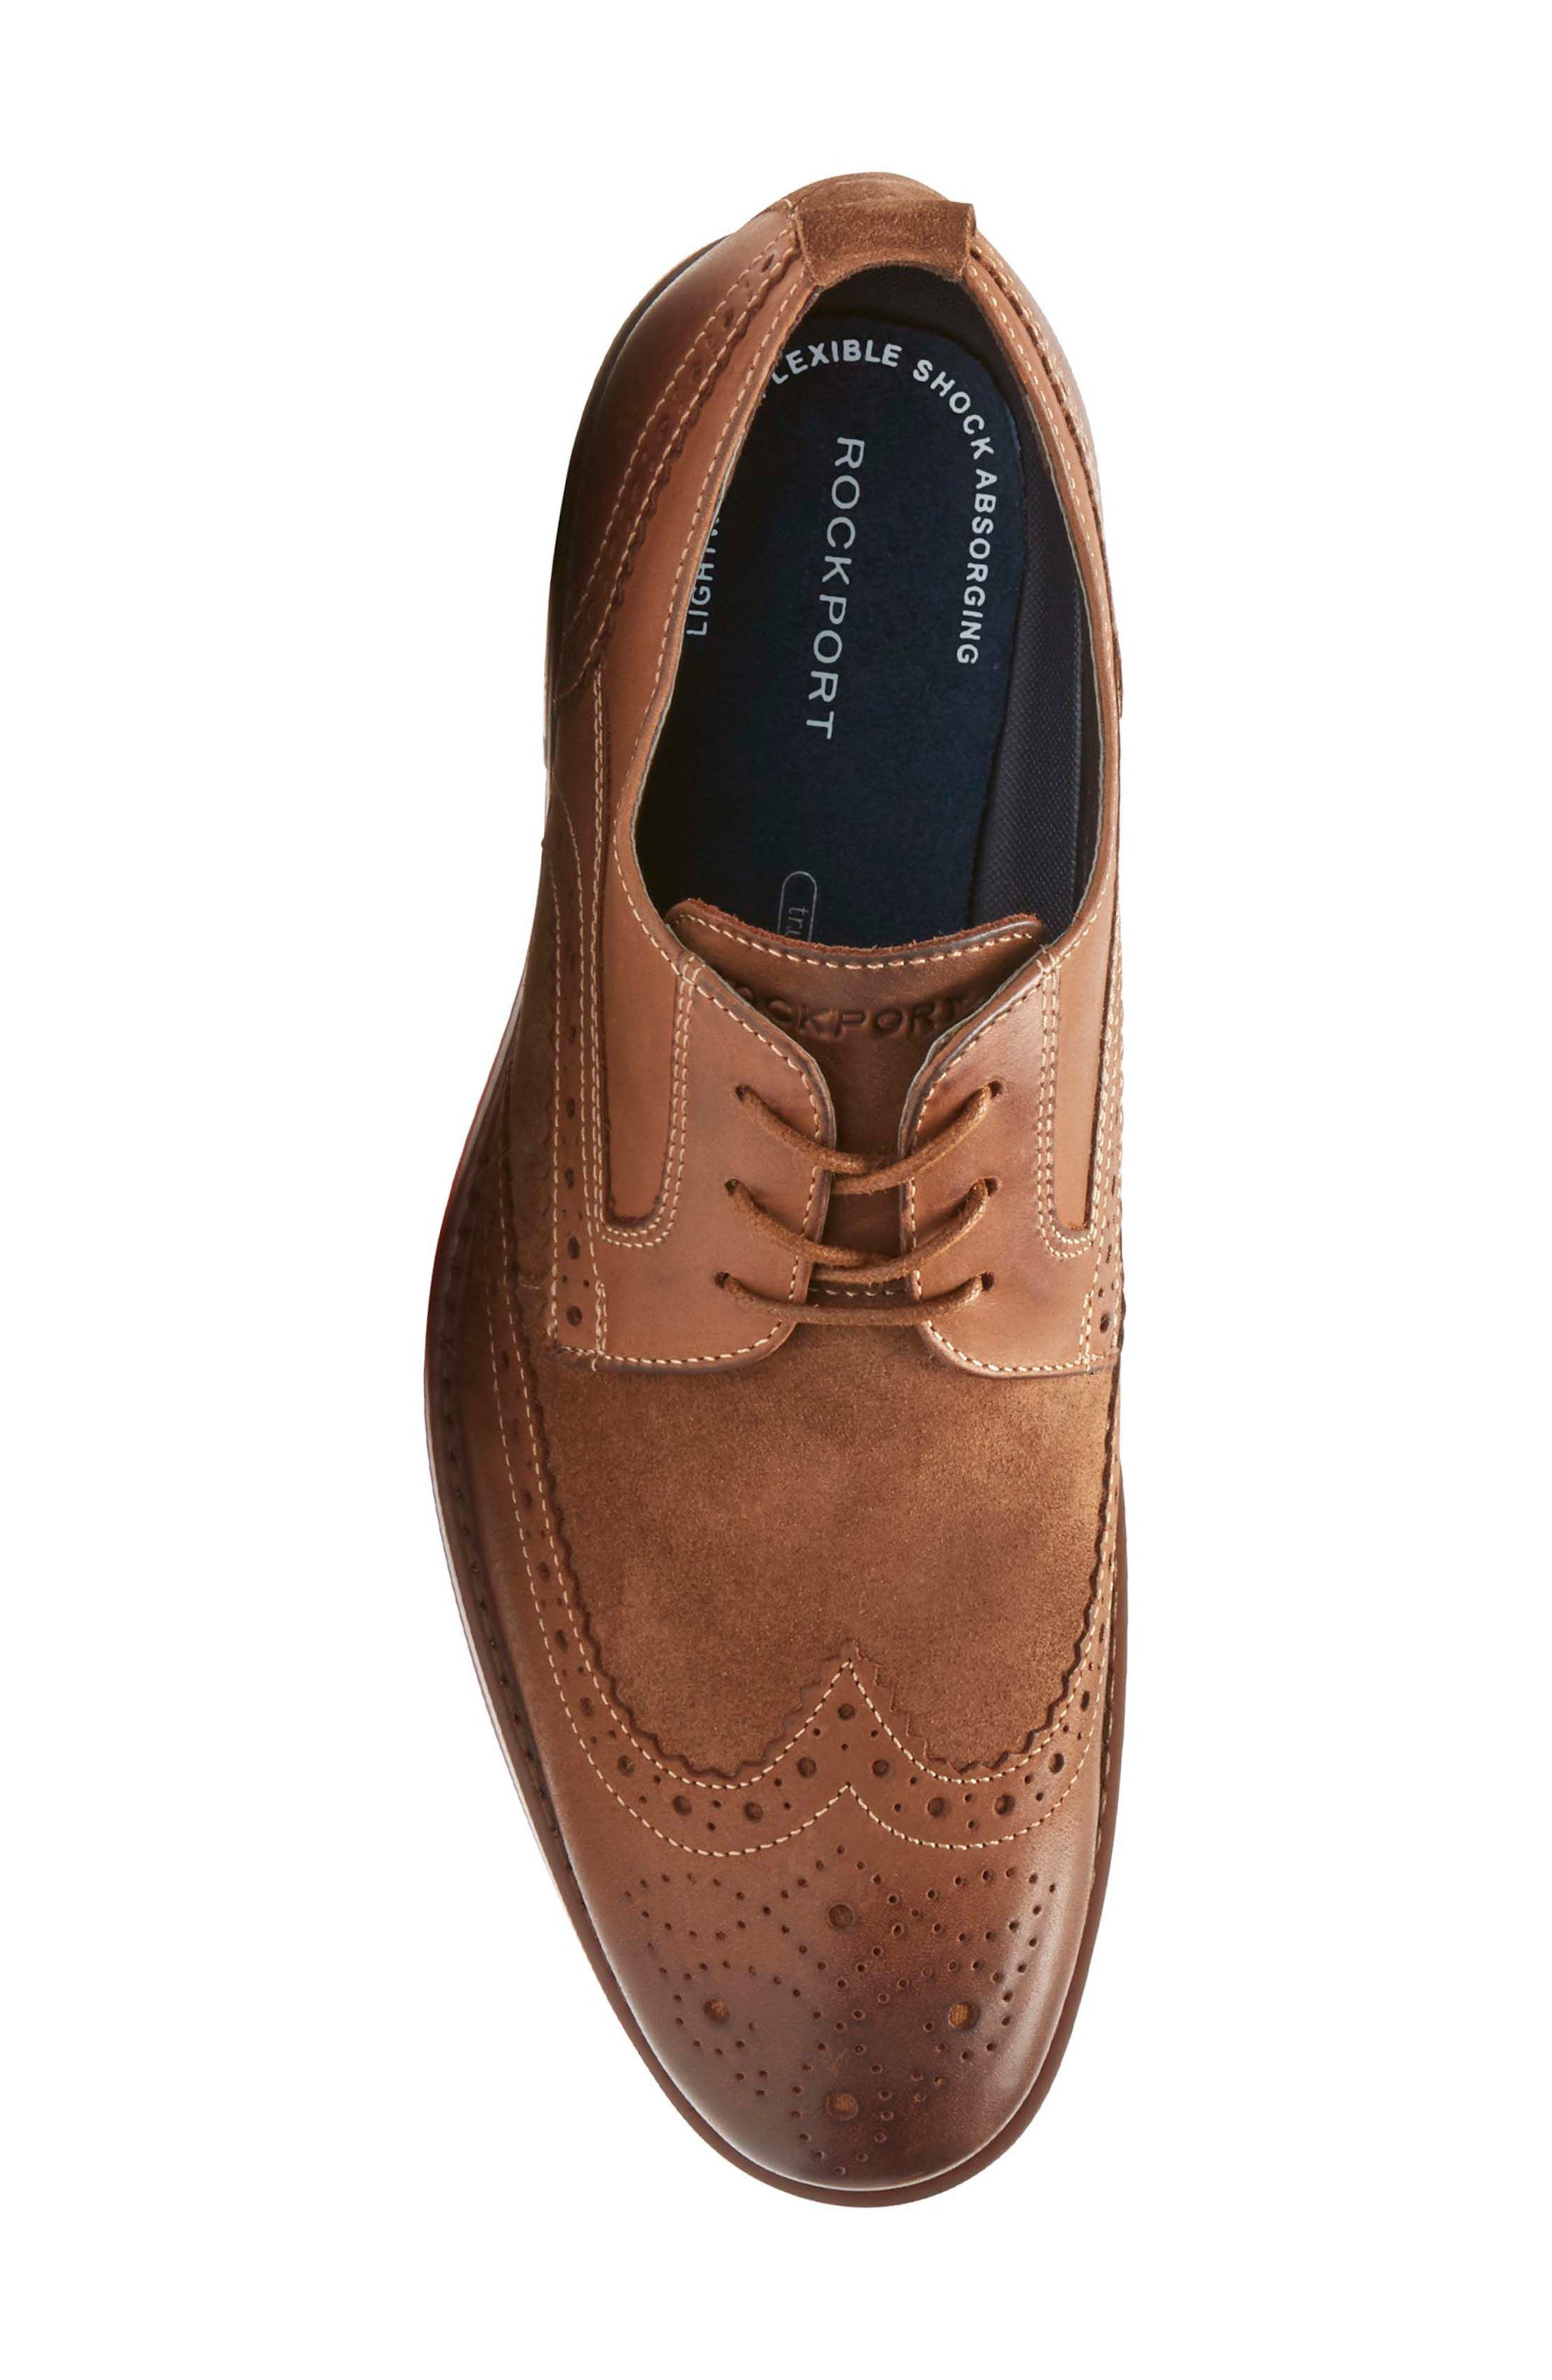 Wynstin Wingtip,                             Alternate thumbnail 5, color,                             Tobacco Leather/ Suede